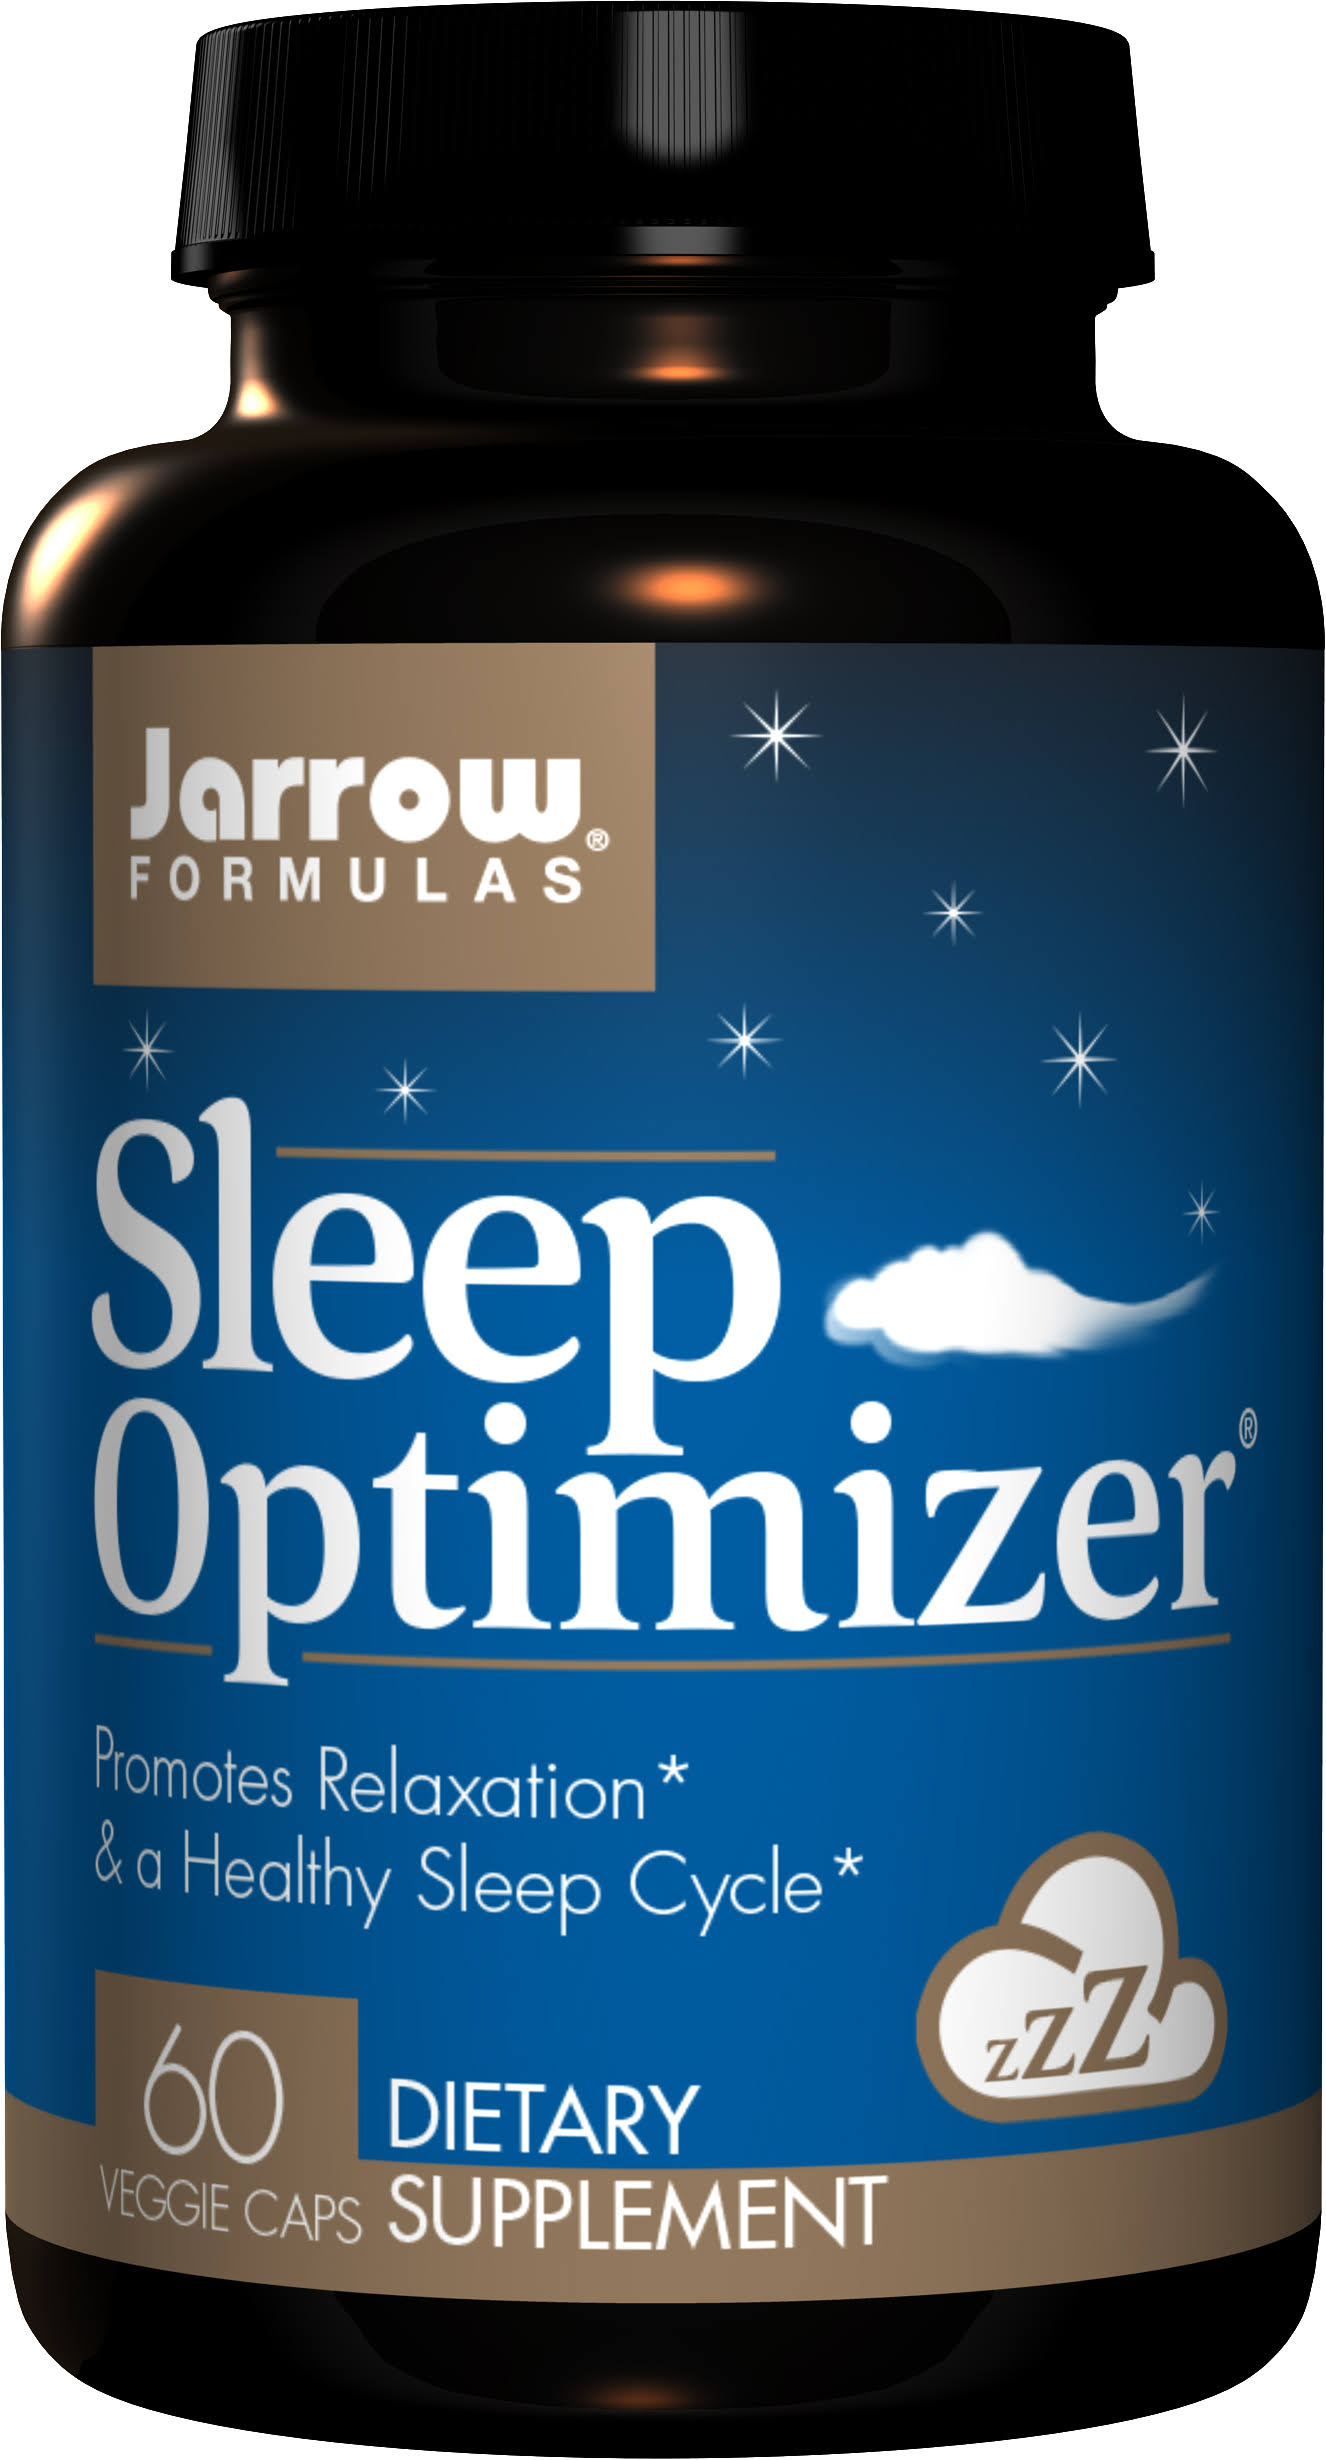 Jarrow Formulas Sleep Optimizer - 60 Veggie Caps